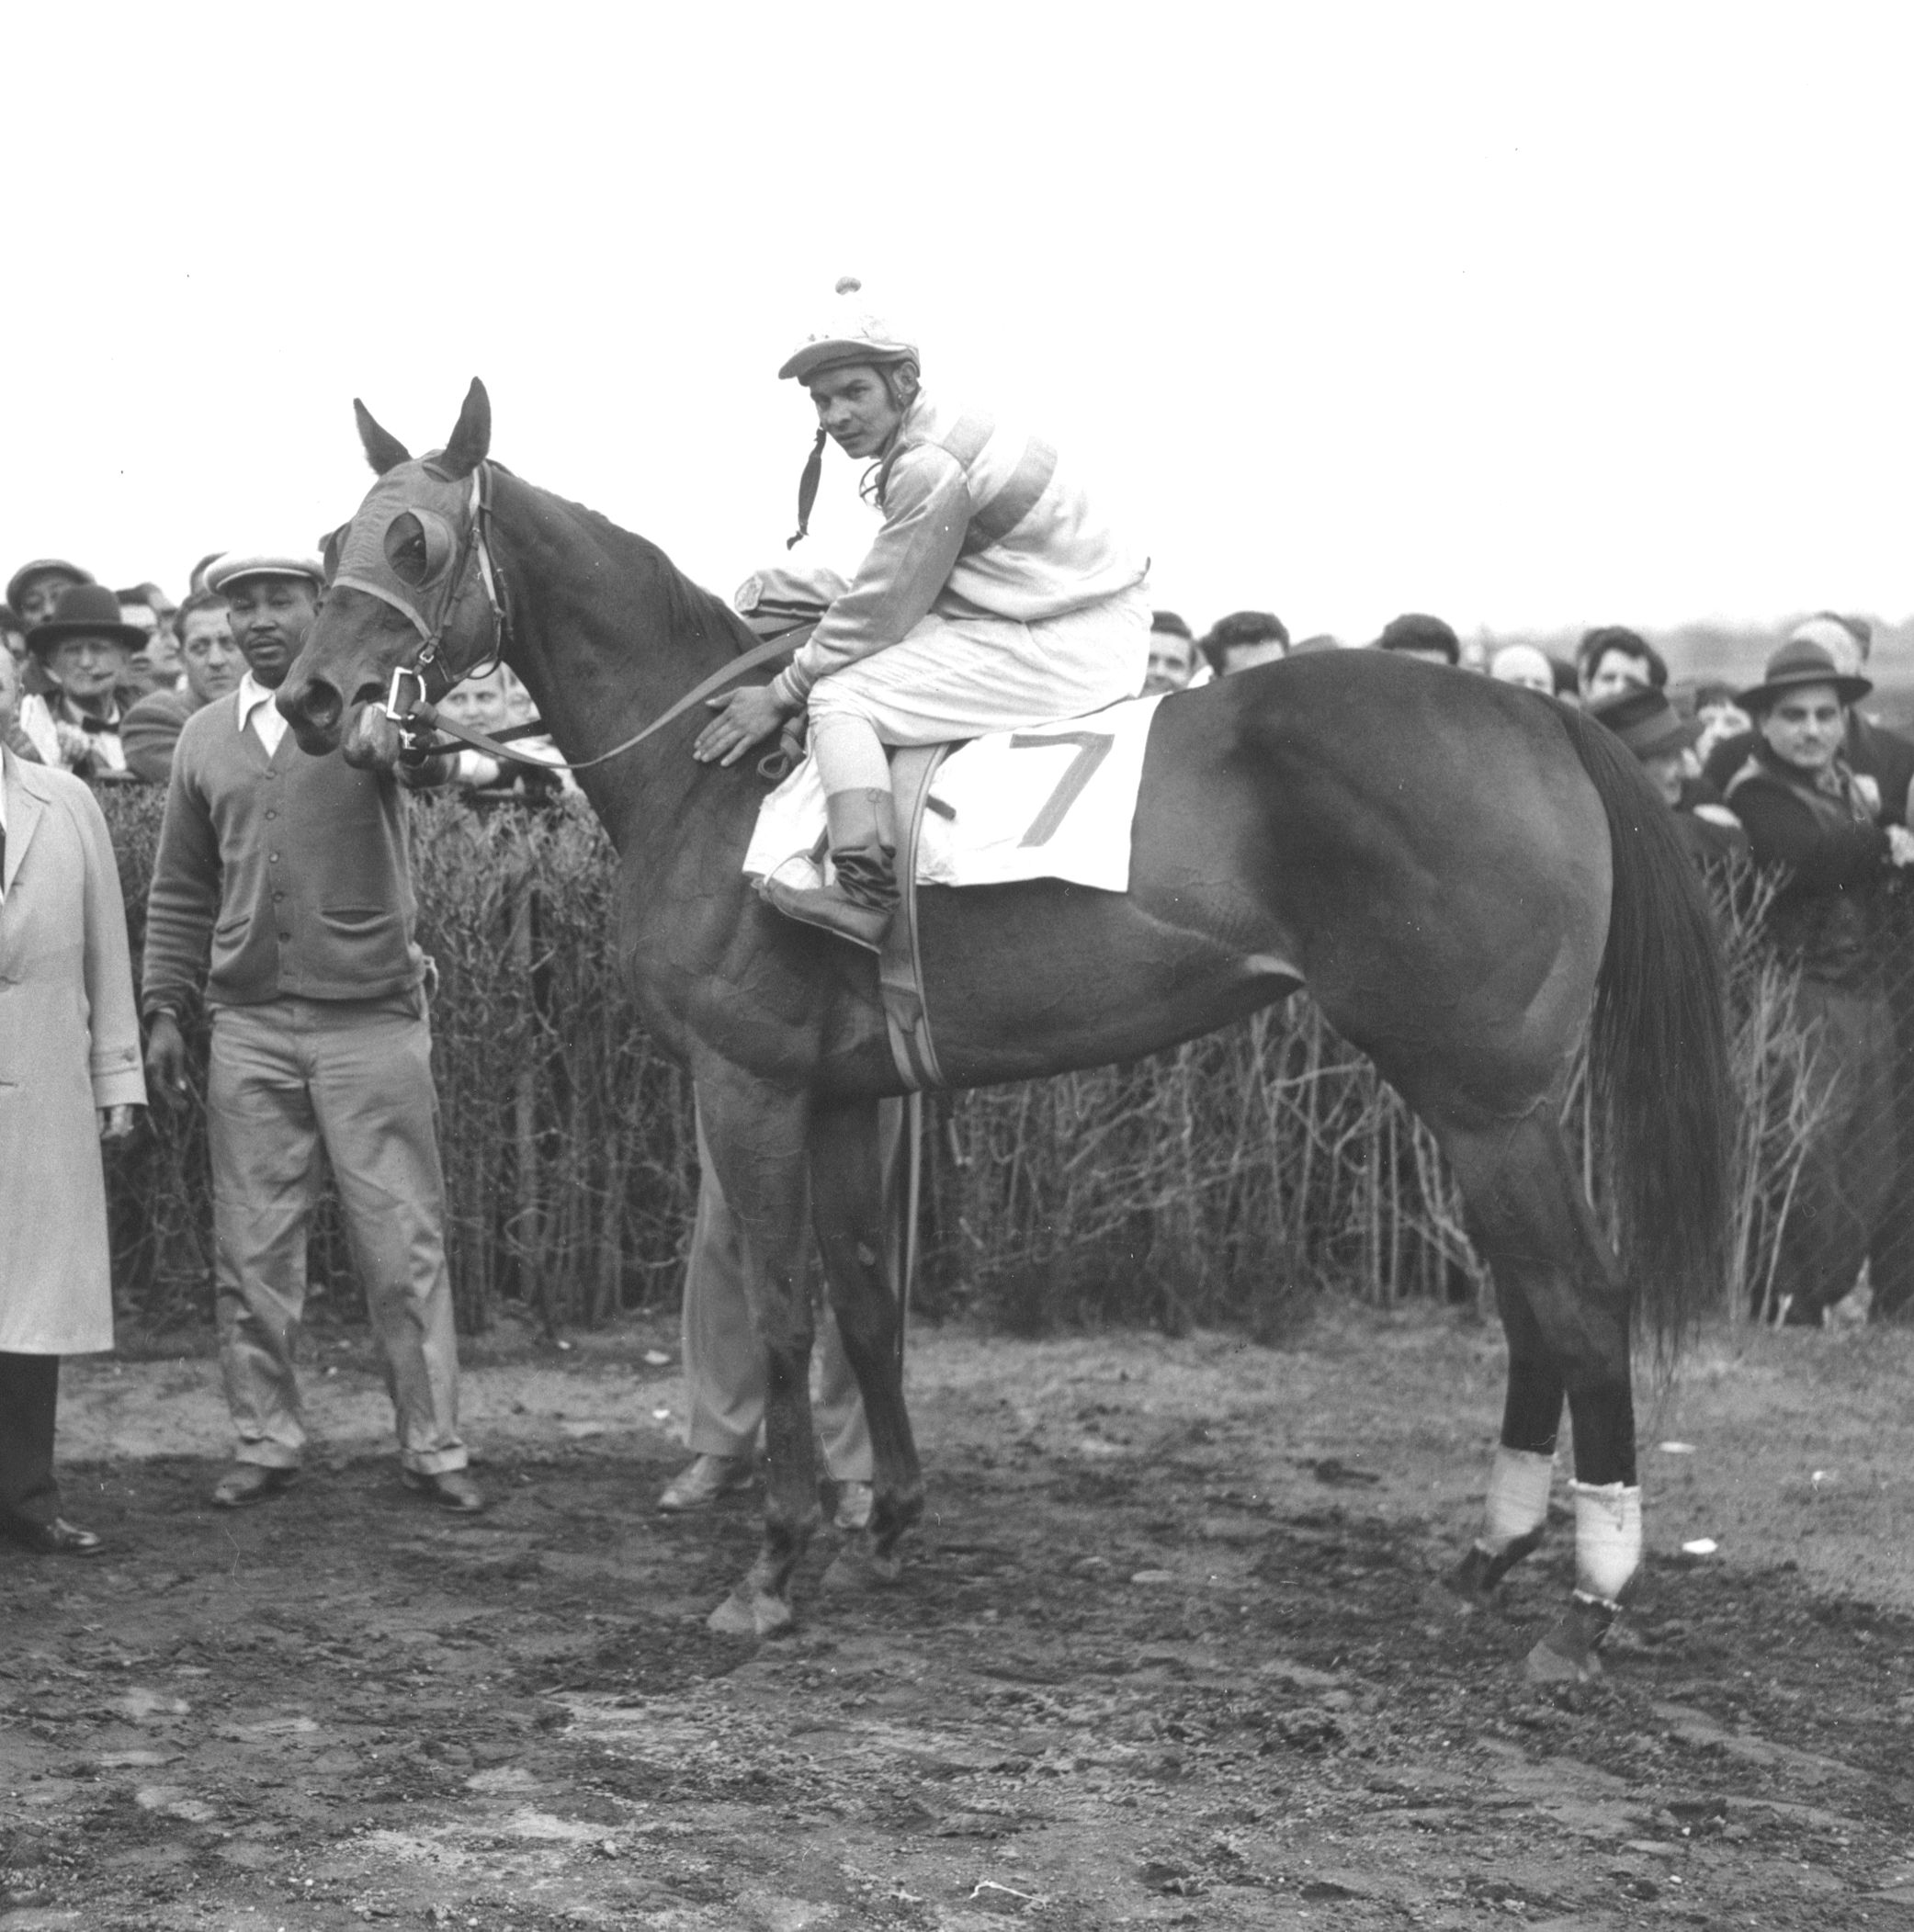 Searching in the winner's circle with Ismael Valenzuela up (Bert Morgan/Museum Collection)